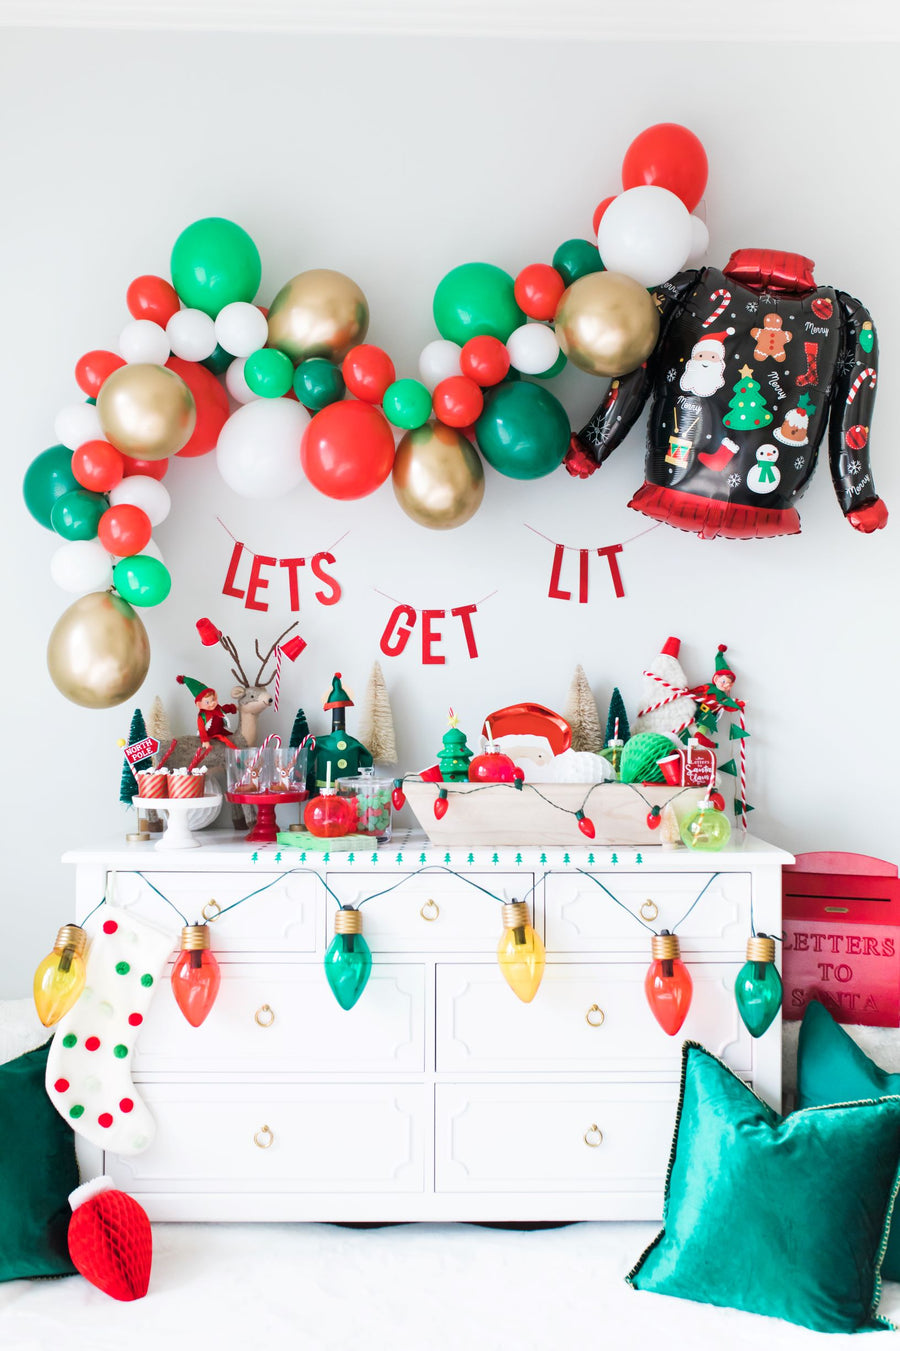 Let's Get Lit Christmas Balloon Garland Kit